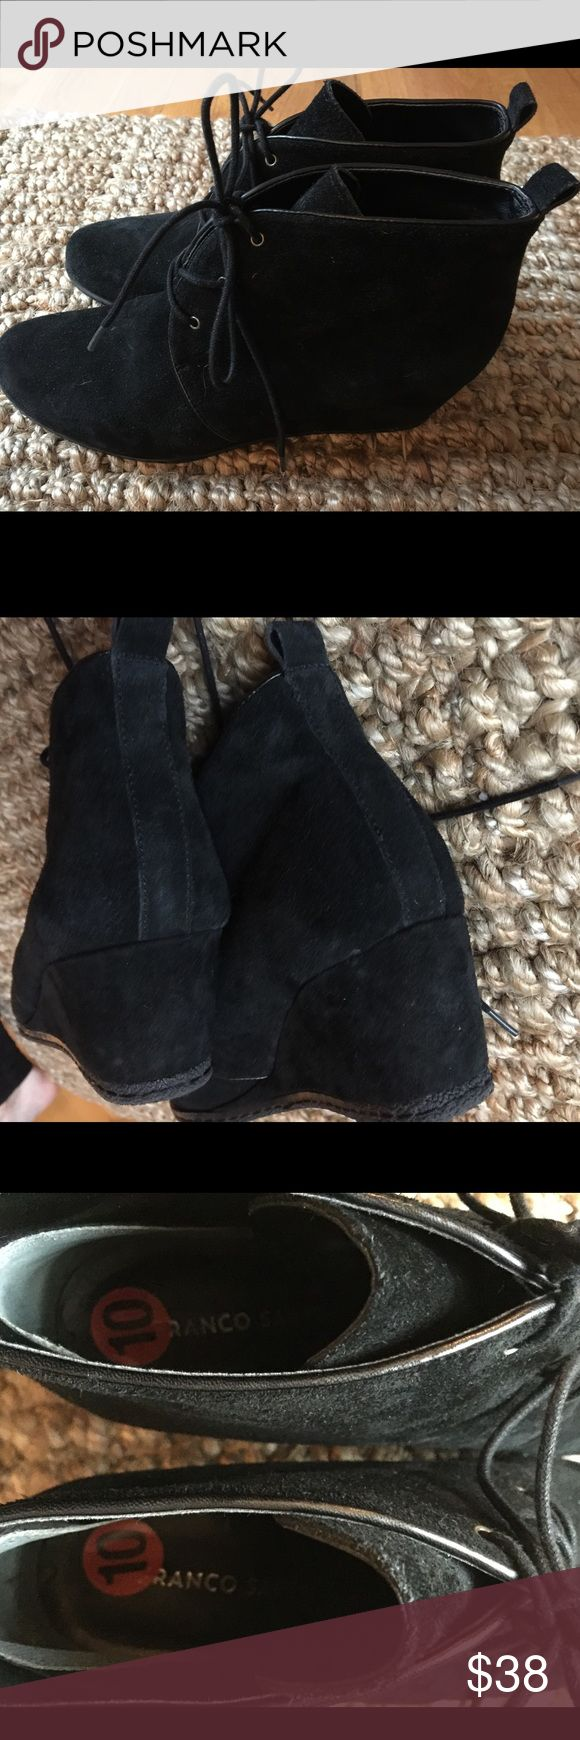 Black suede wedge booties SZ 10 Black suede wedge booties SZ 10. Franco Sarto. Very good condition, only sign of wear is very slight on sole. These are super cute!! Franco Sarto Shoes Ankle Boots & Booties